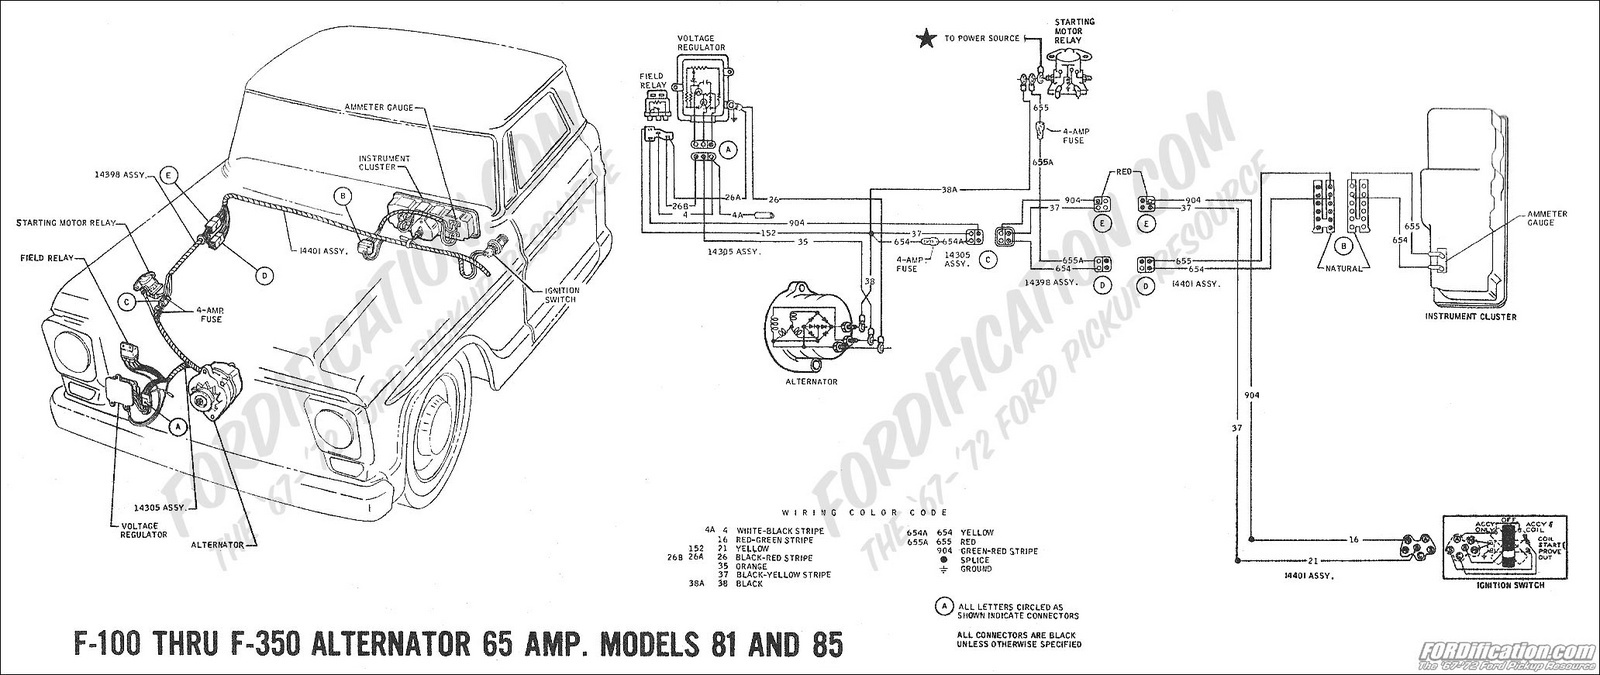 Watch moreover 1953 Ford 800 6volt Tractor Yesterdays Tractors besides 641fg 1971 Ford F100 Jumping Battery Terminal Starter Relay Solenoid additionally Wiring diagrams additionally Cadillac 1961 1962 Windows Wiring. on 1975 ford truck ignition wiring diagram